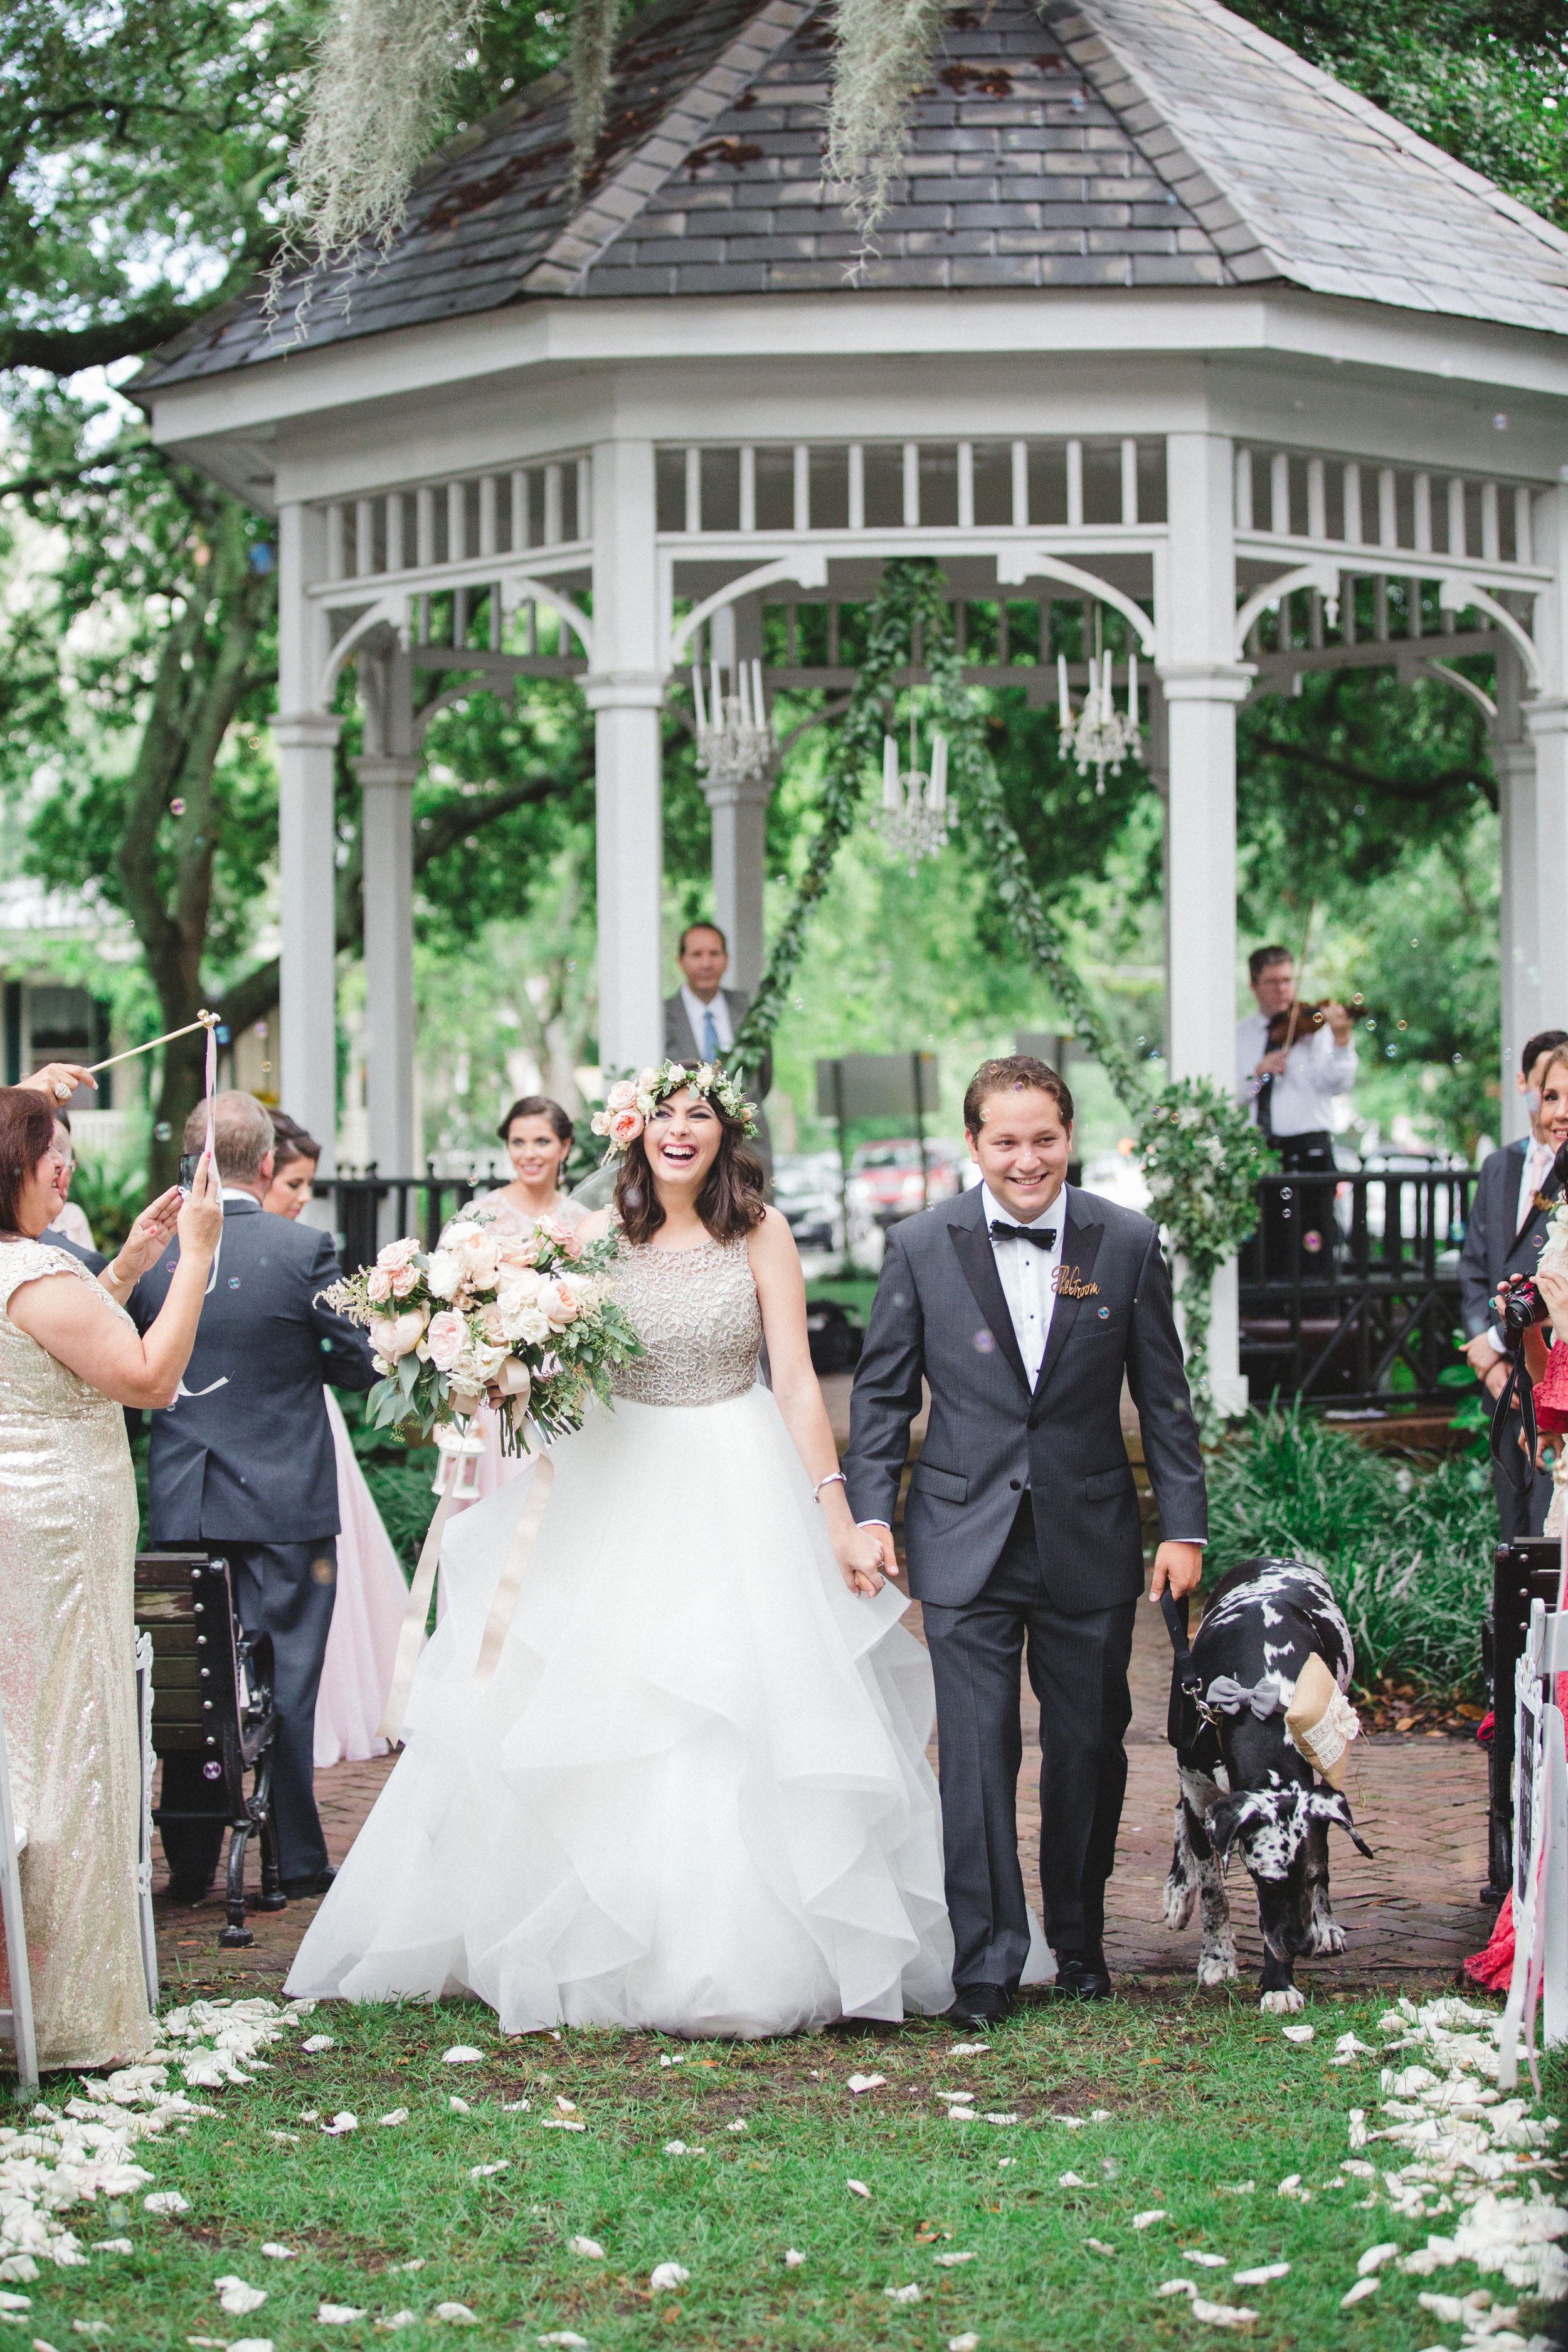 daniela-and-pedro-wedding-izzy-hudgins-photography-a-to-zinnias-whitfield-square-charles-h-morris-center-wedding-ivoyy-and-beau-bridal-boutique-dorie-hayley-paige-savannah-wedding-planner-savannah-bridal-boutique-savannah-weddings-29.jpg